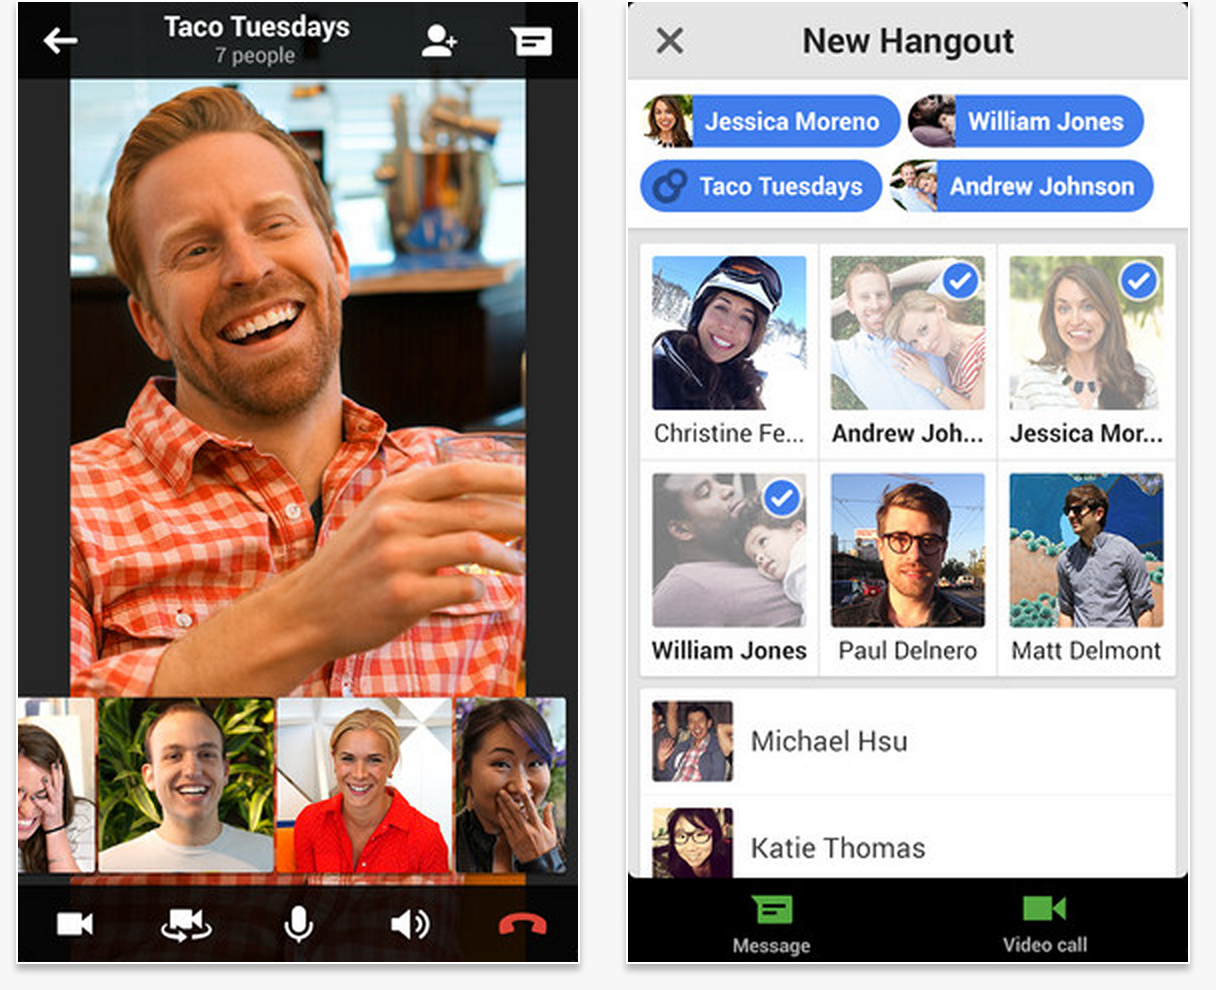 Google Hangout Update: Merges SMS With Hangout Conversations